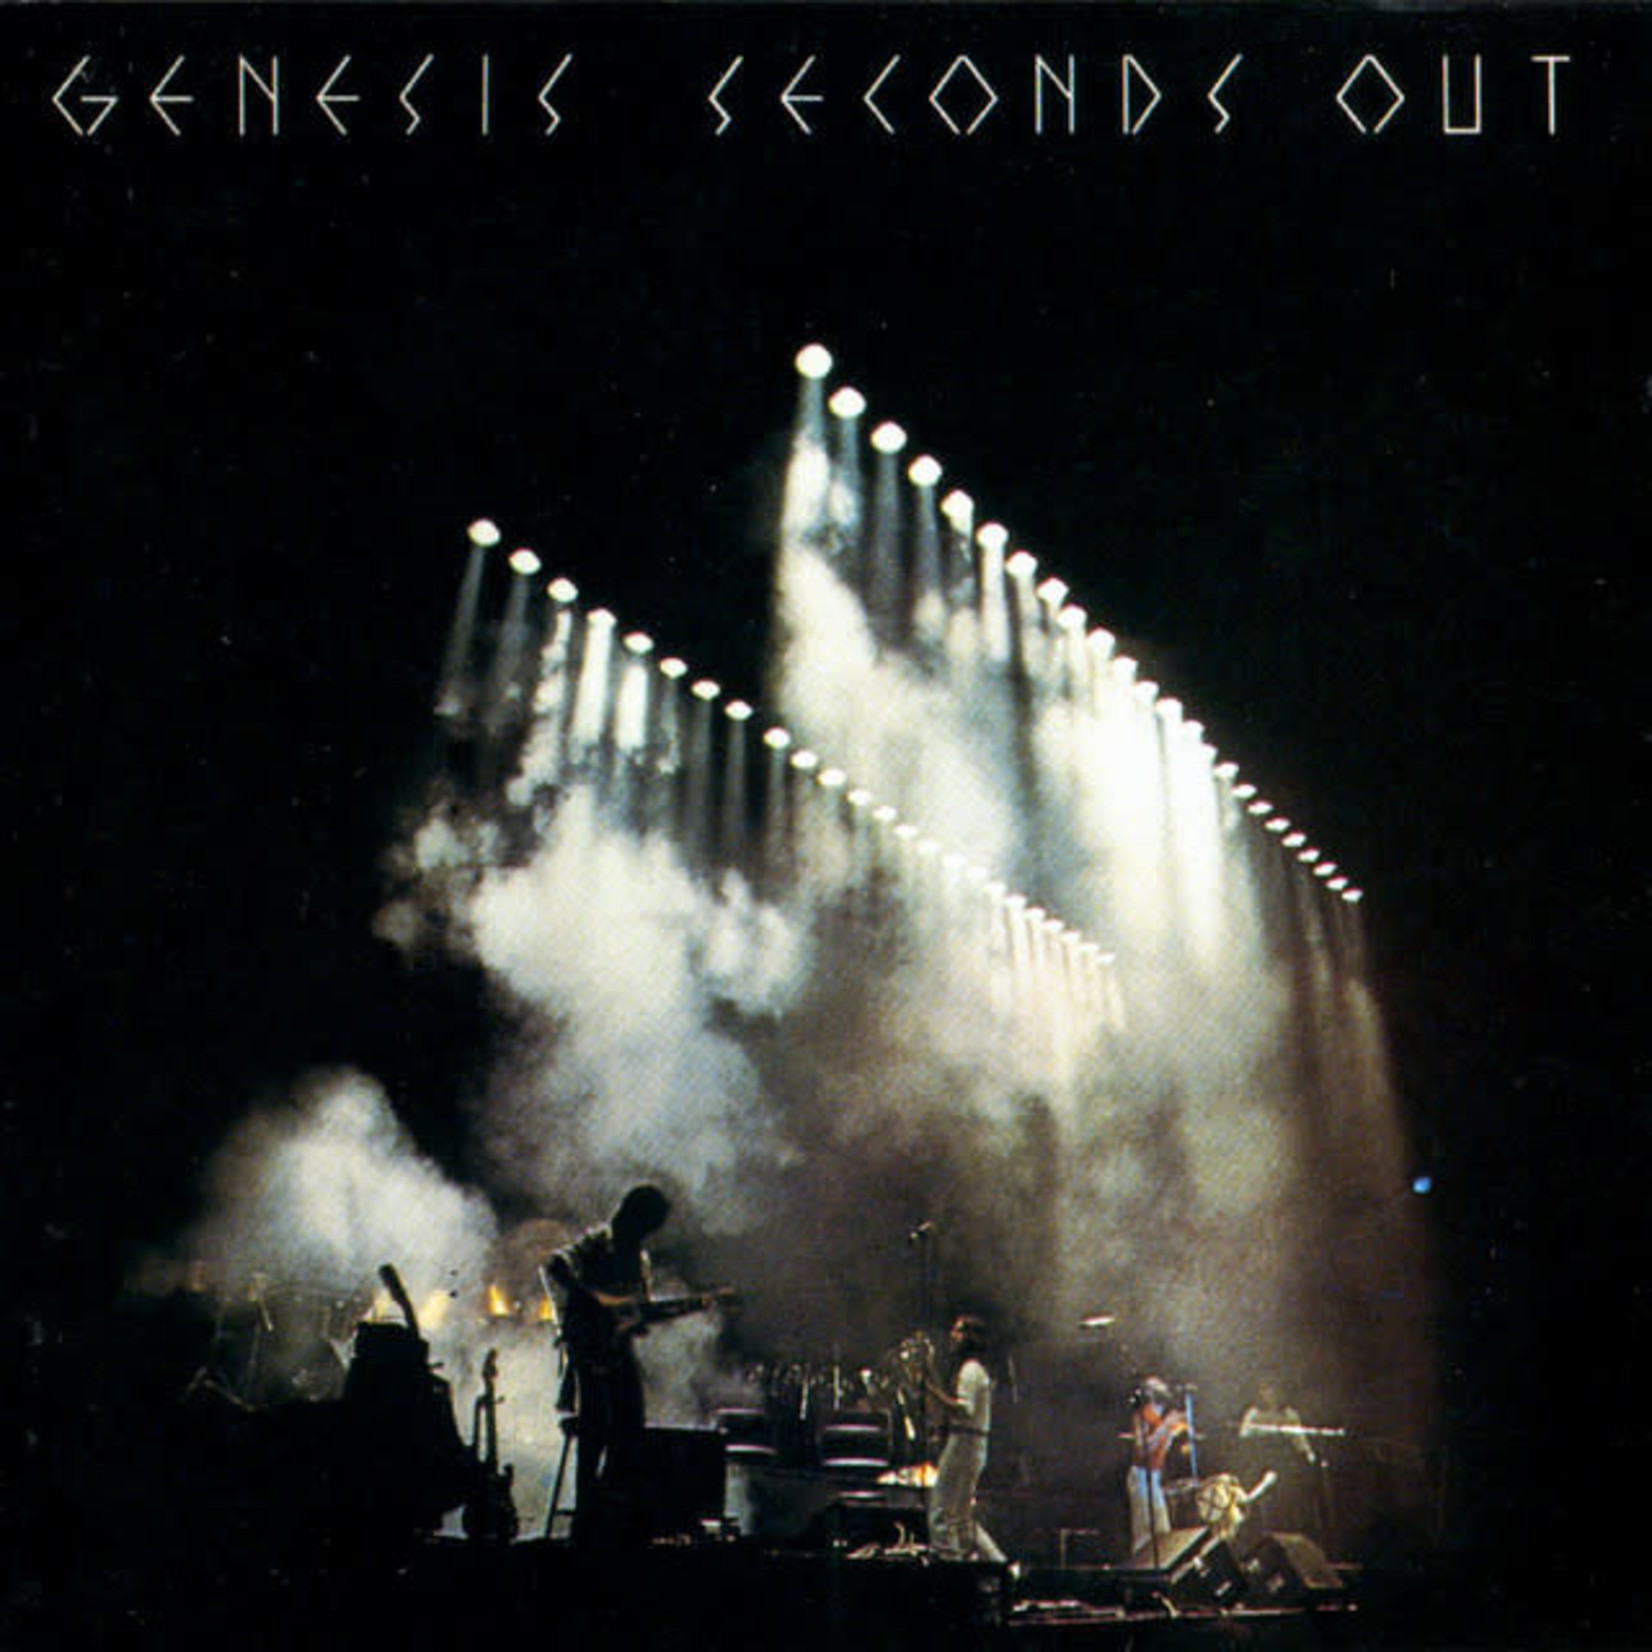 Vinyl Genesis - Seconds Out